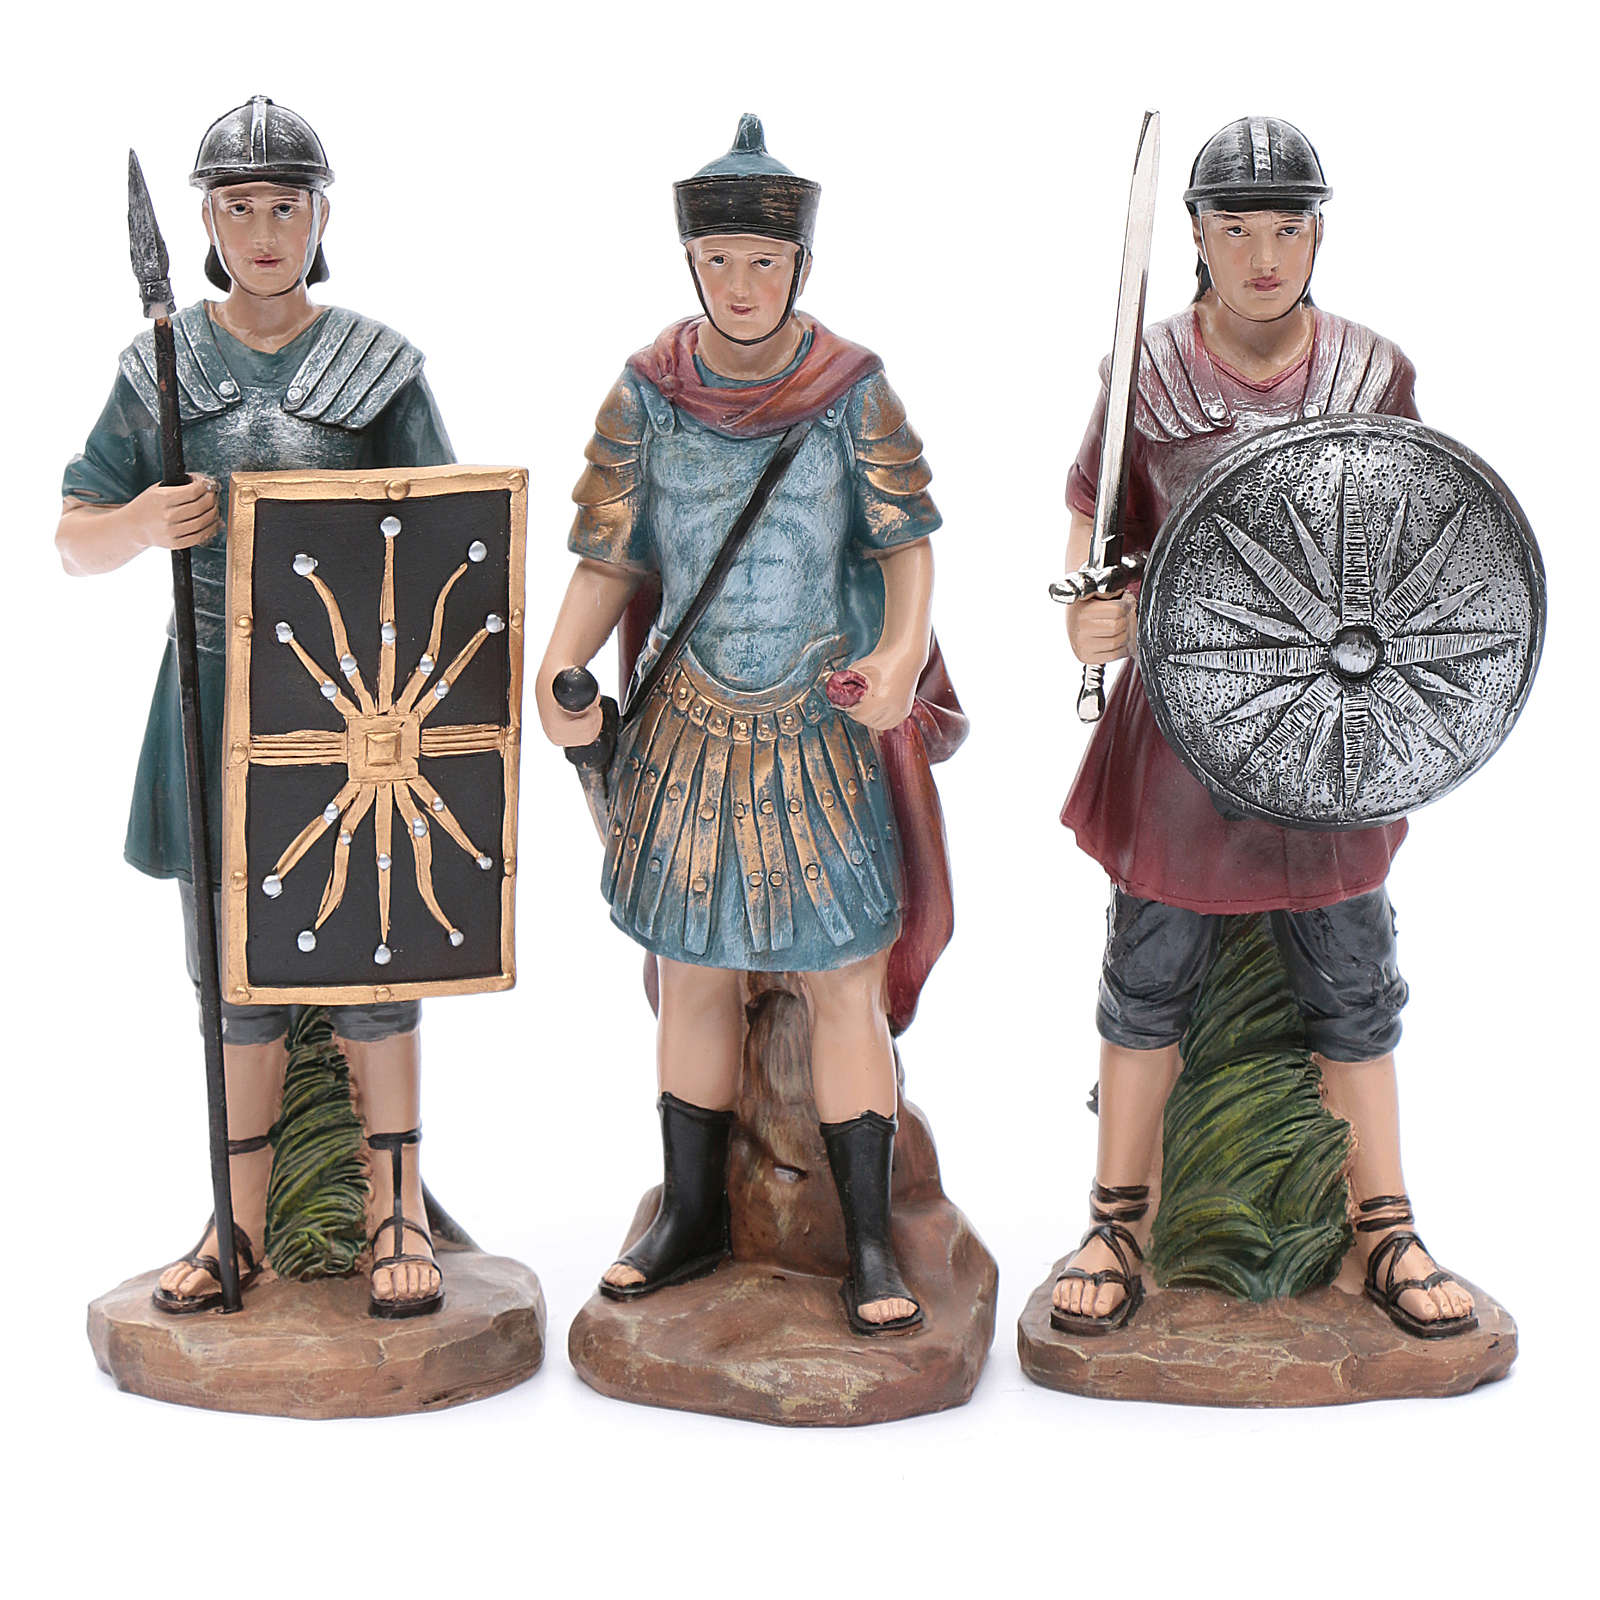 Nativity scene statues Roman soldiers in resin 20 cm 3 pieces set 3